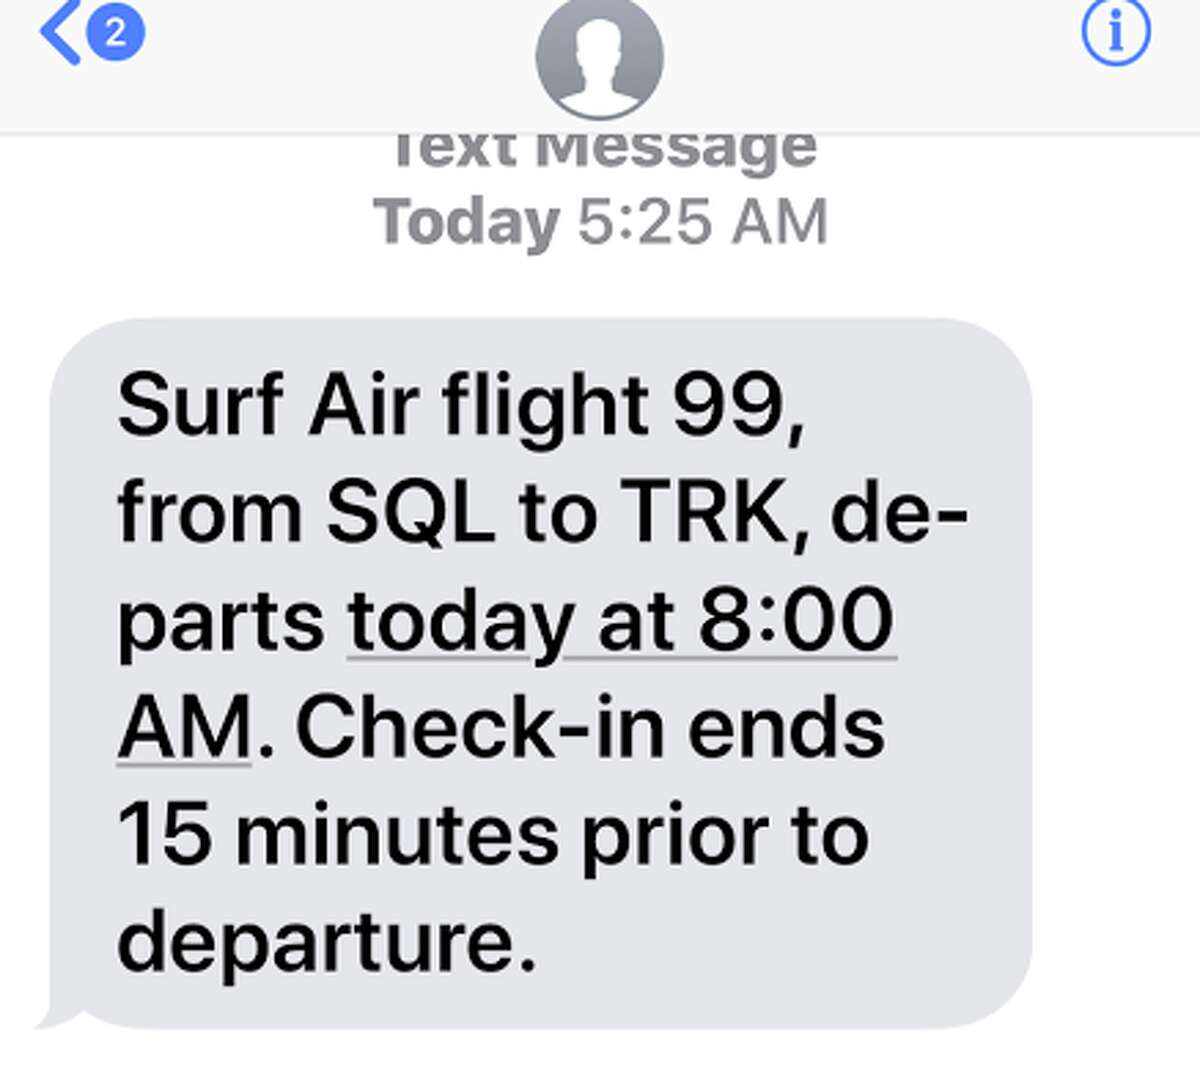 Early in the morning before my flight, the Surf Air app sends me a text with my flight details